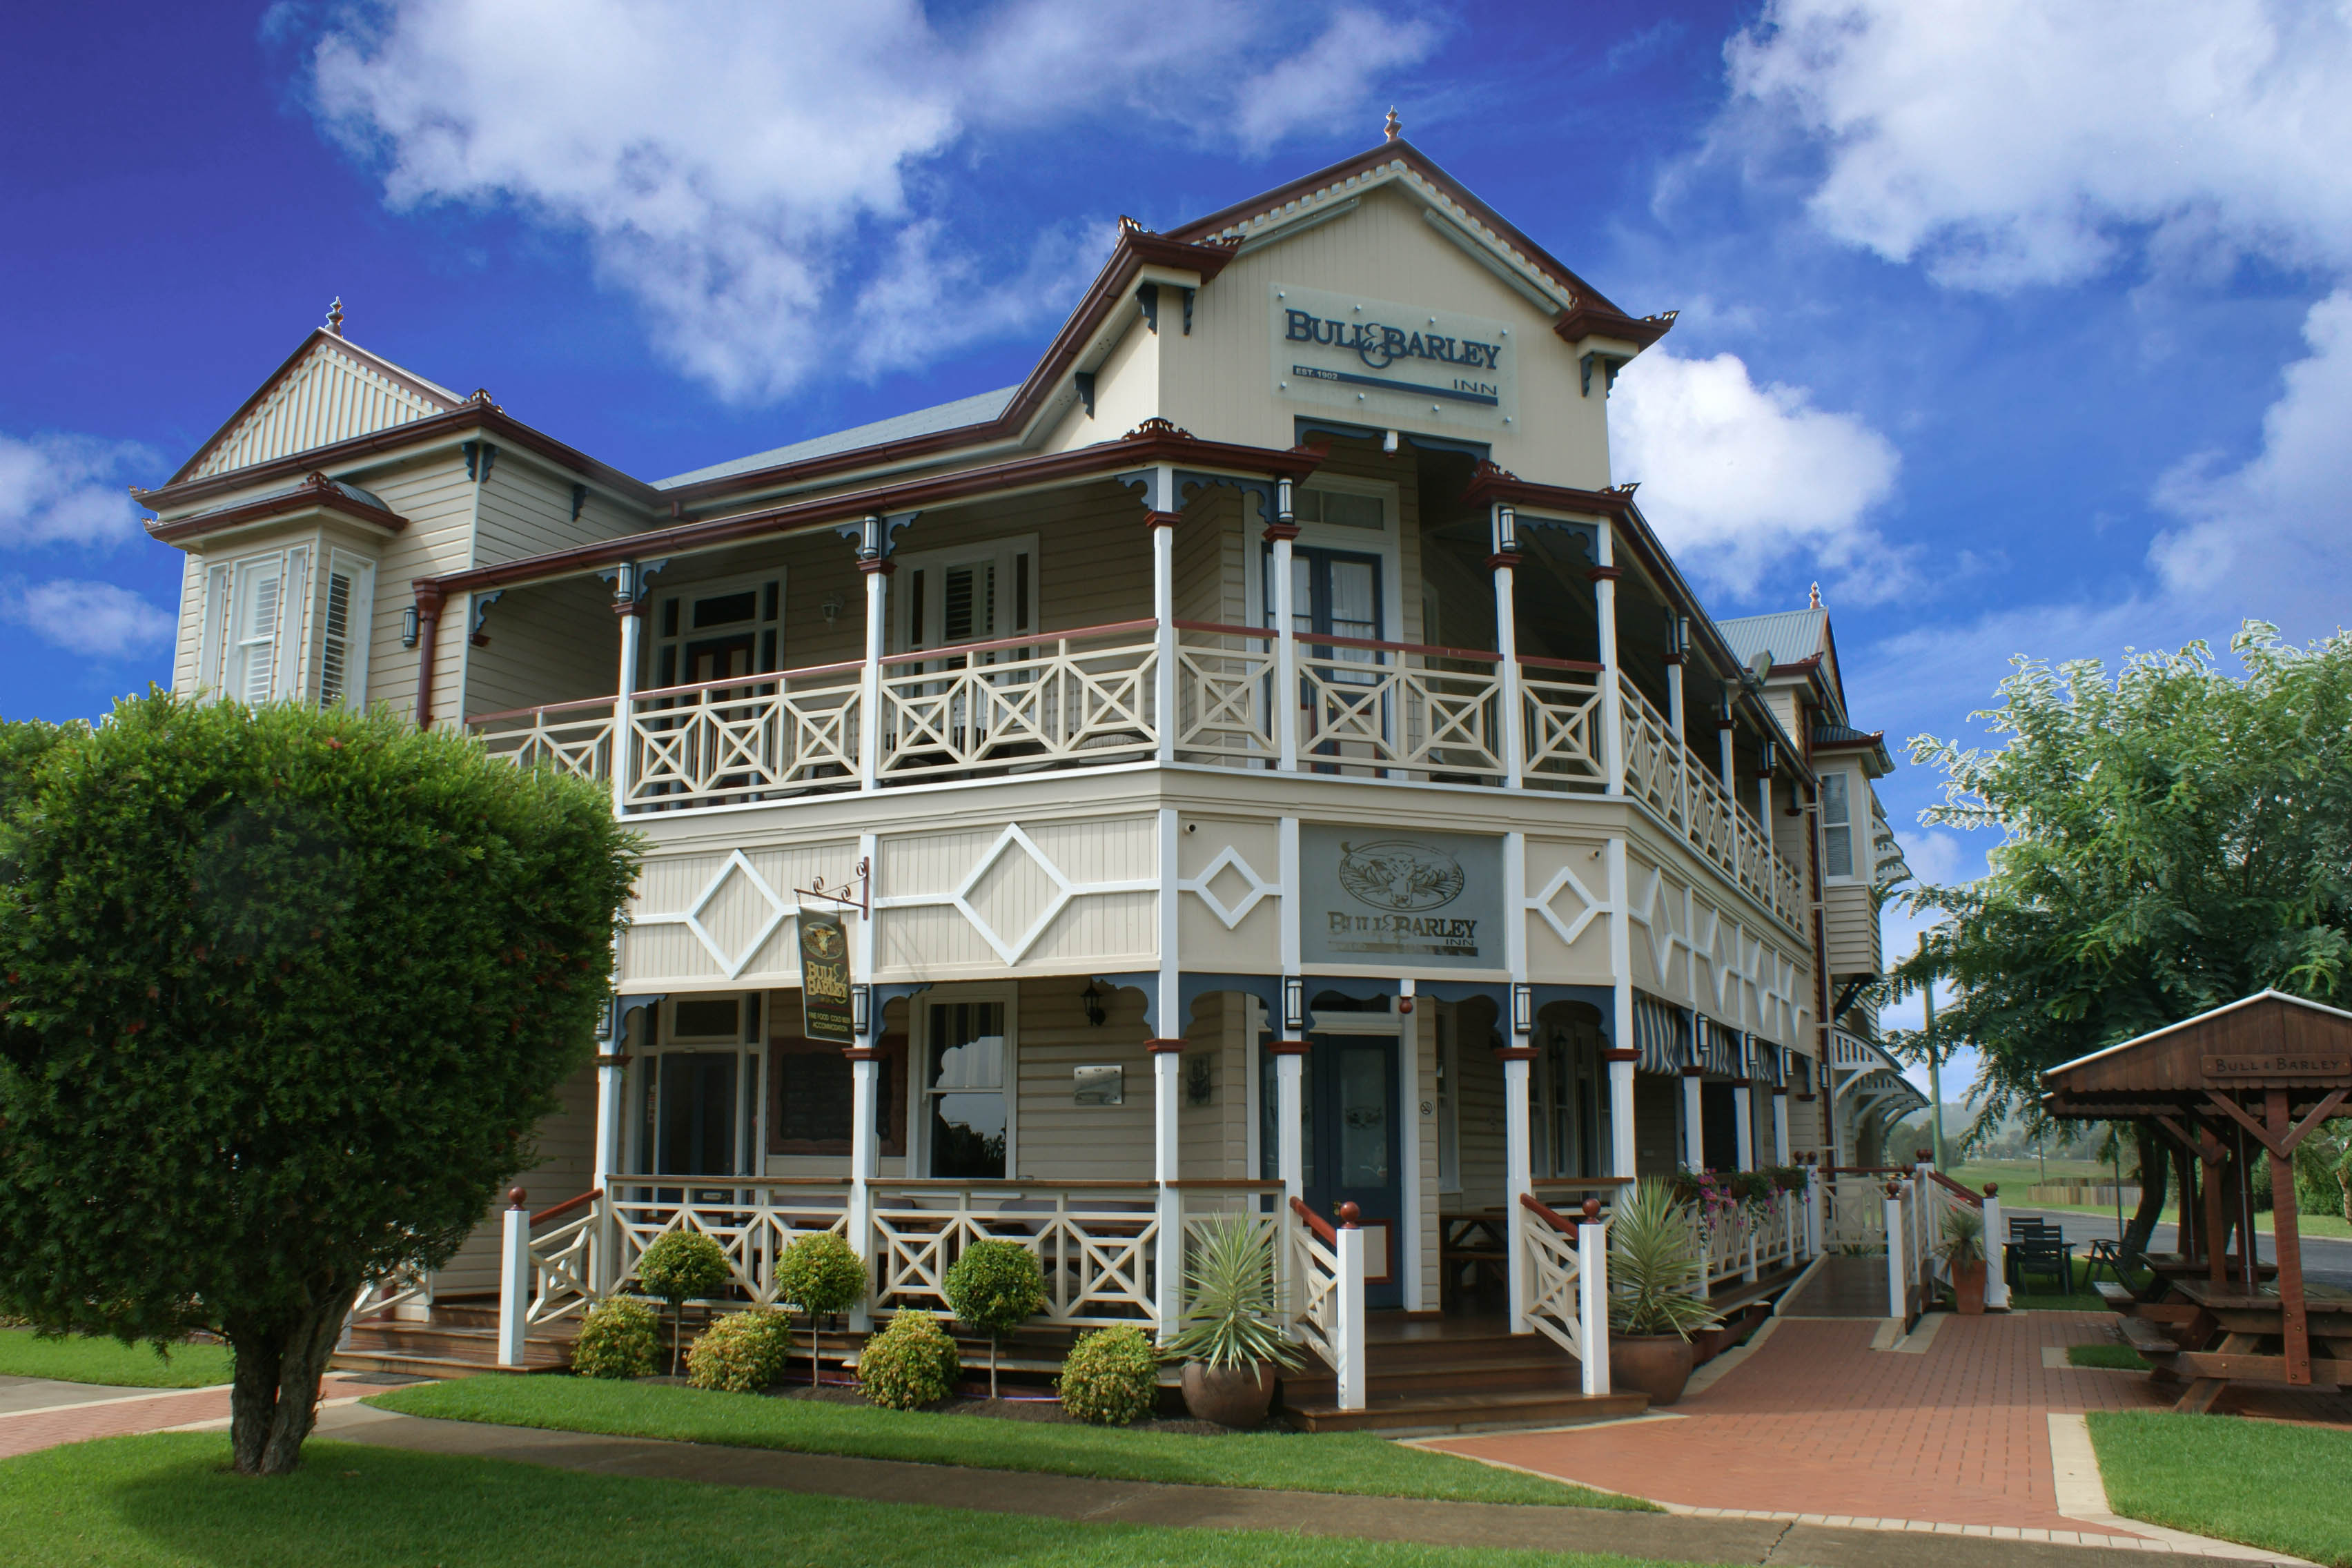 renovated hotel near toowoomba qld for sale. Black Bedroom Furniture Sets. Home Design Ideas